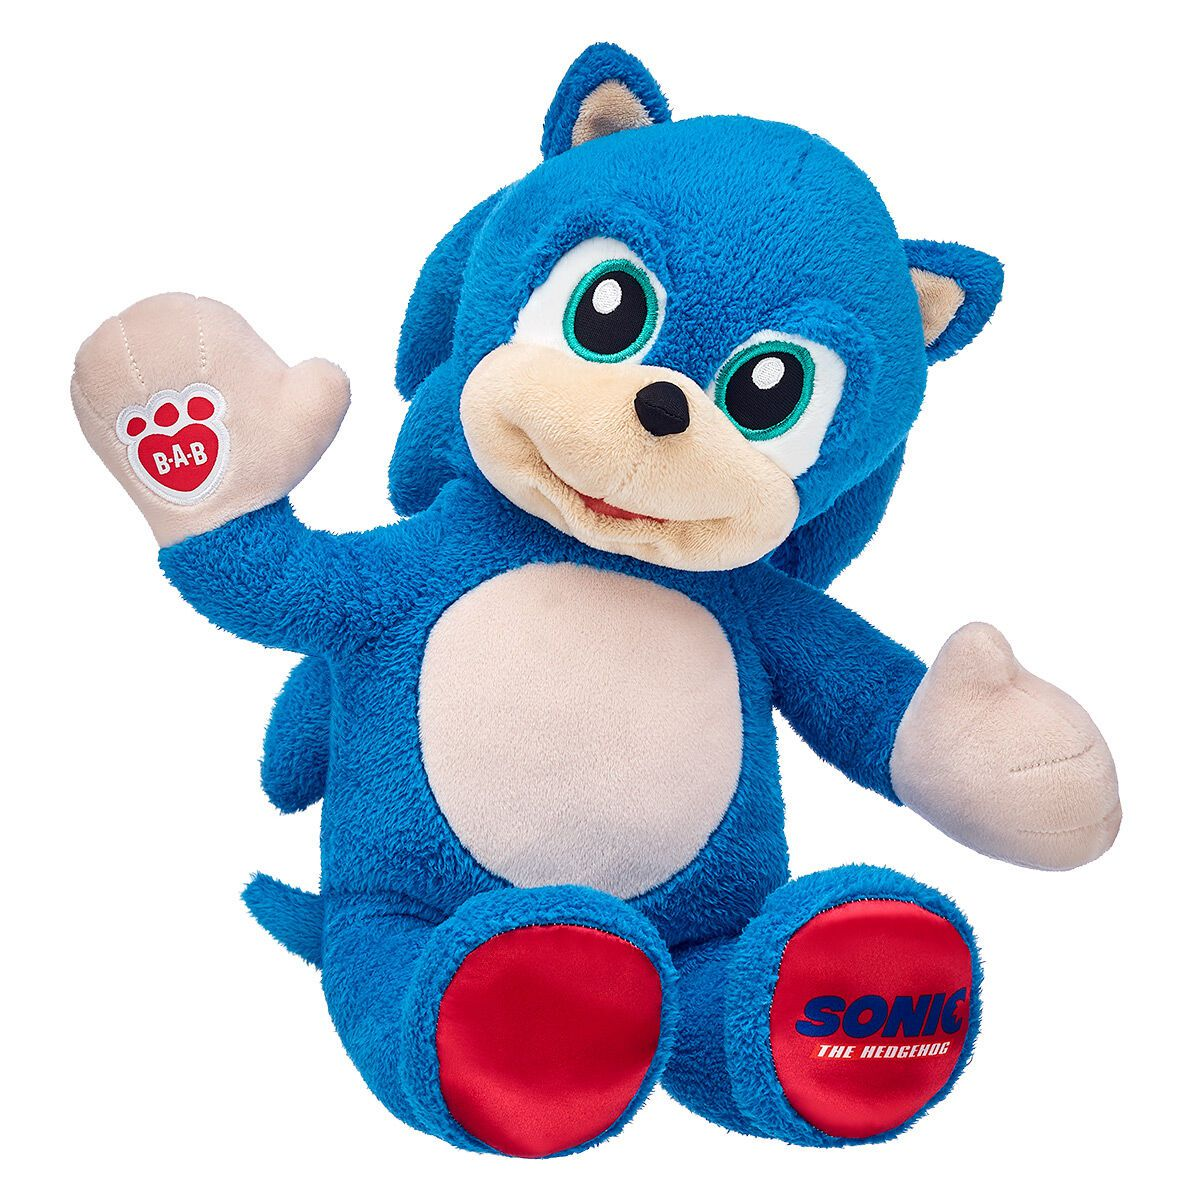 A Sonic the Hedgehog stuffed animal sitting and waving